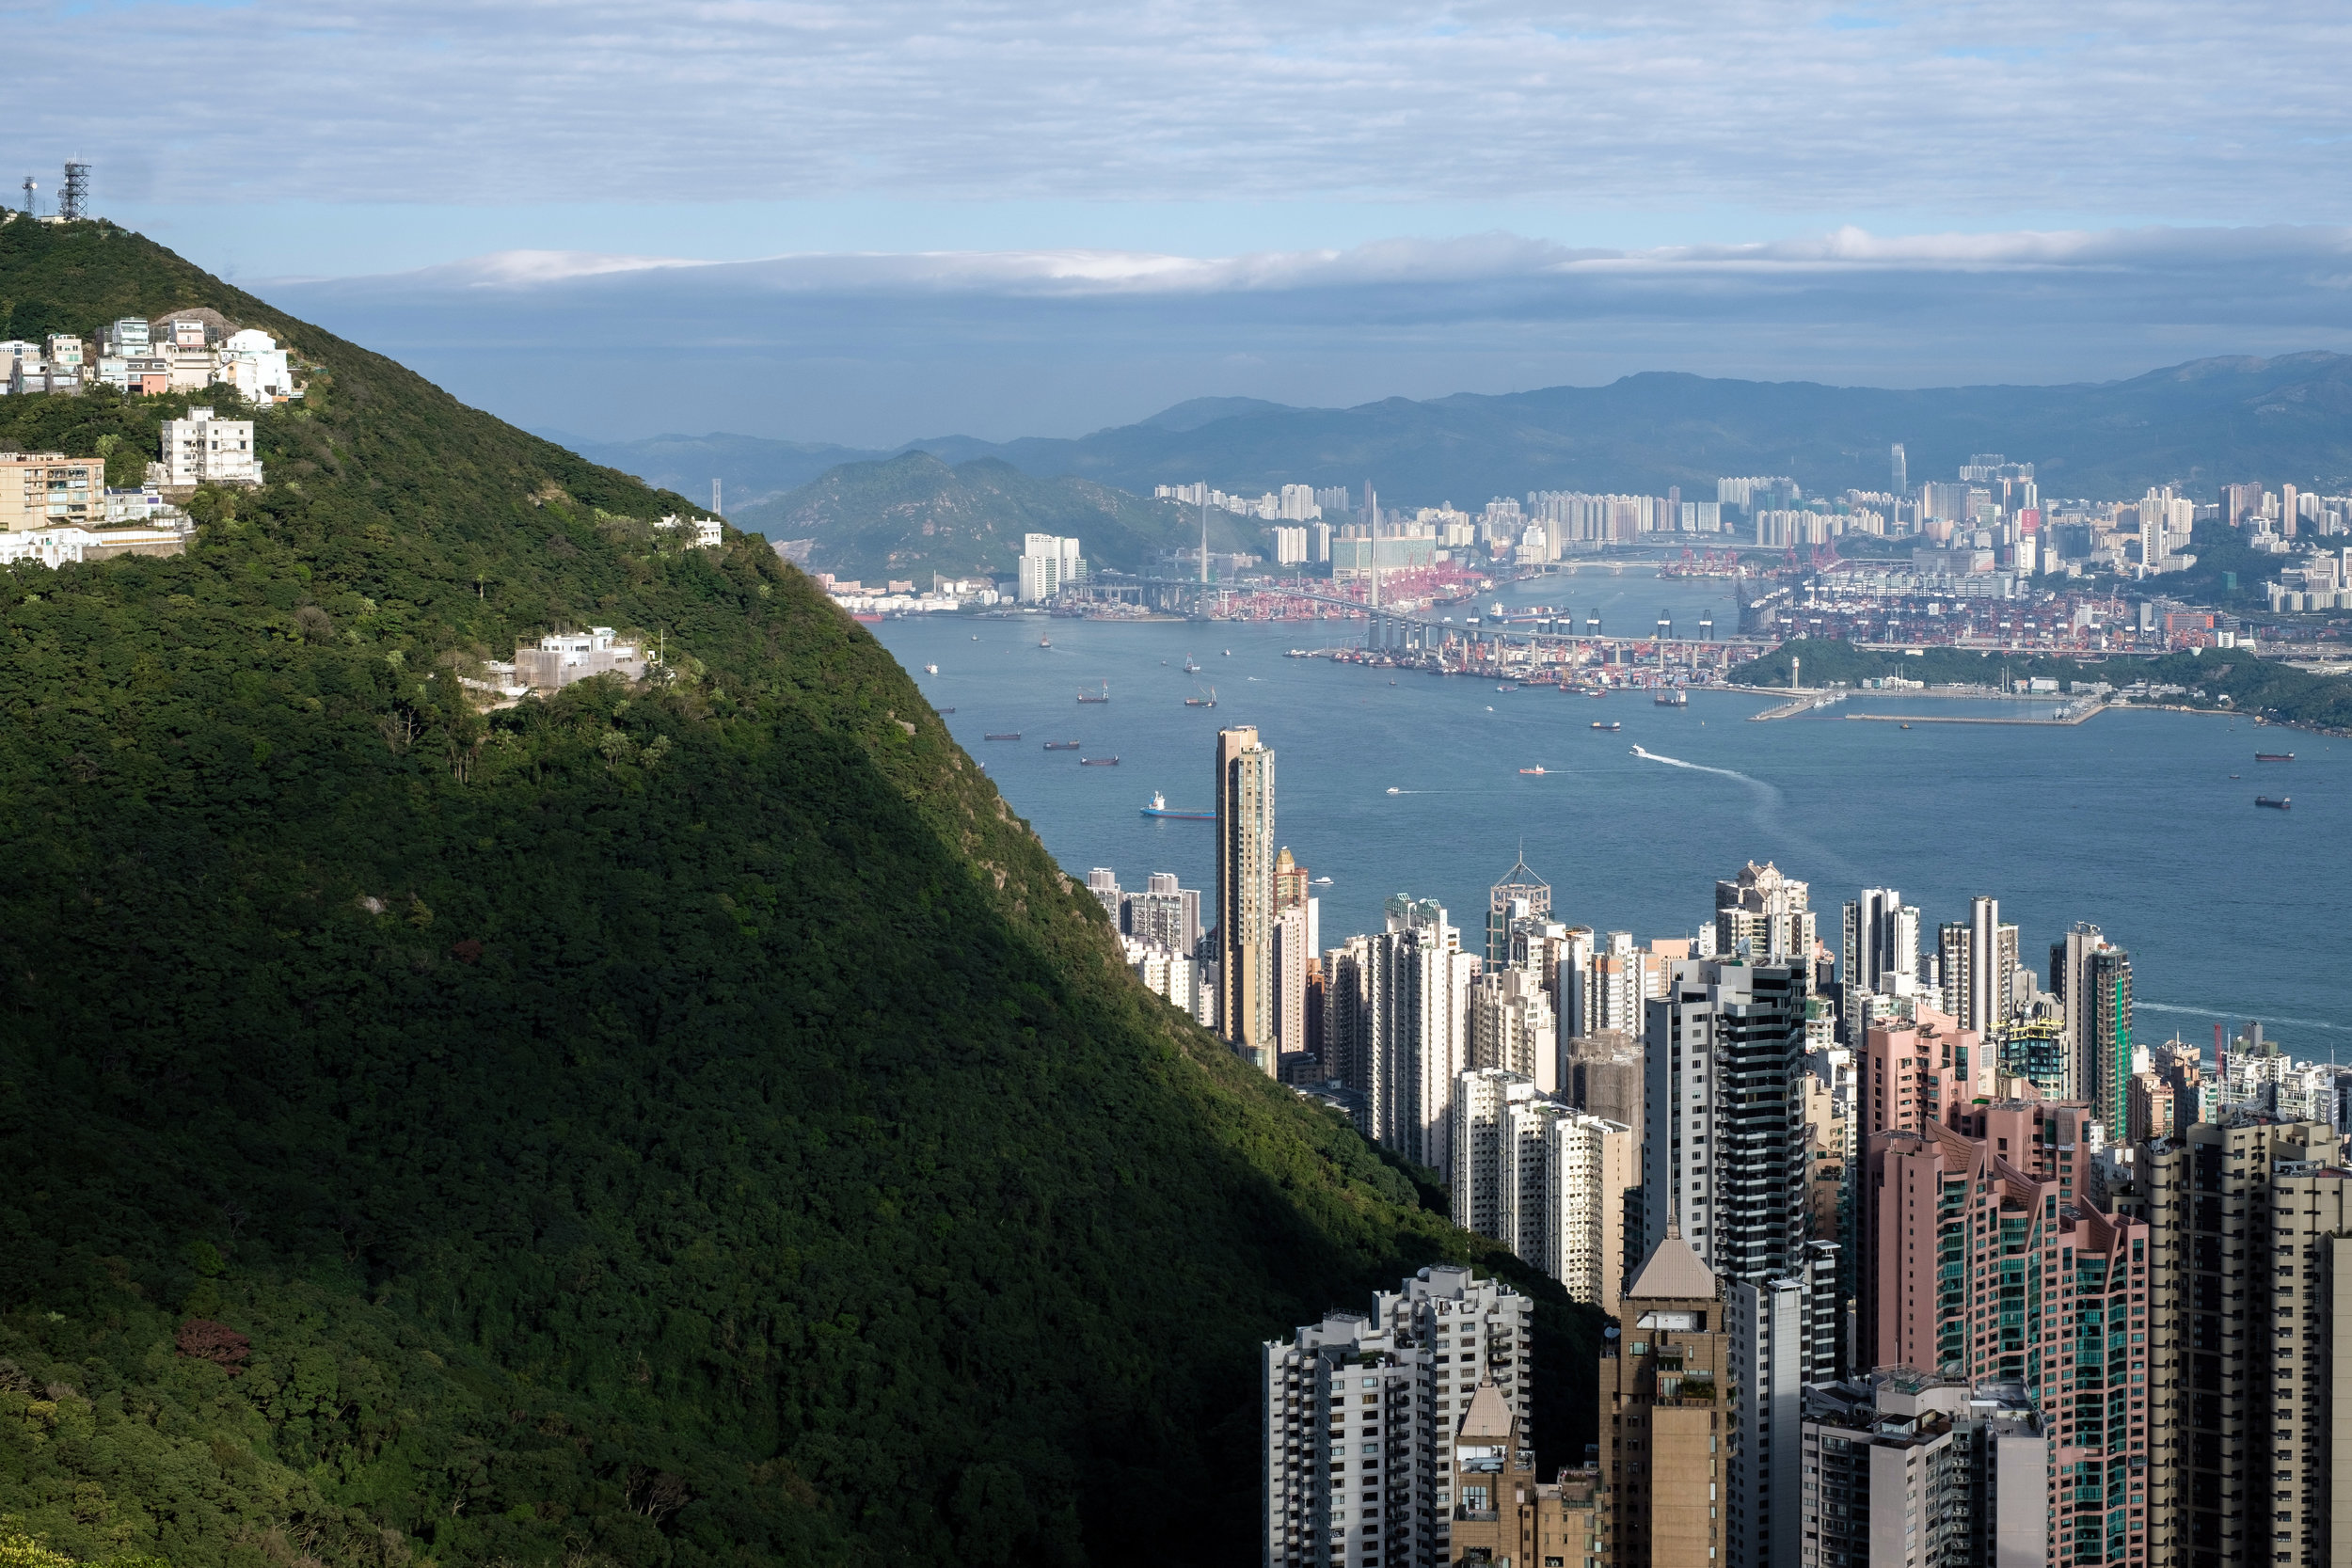 View of the Hong Kong Skyline and Victoria Harbour from The Peak